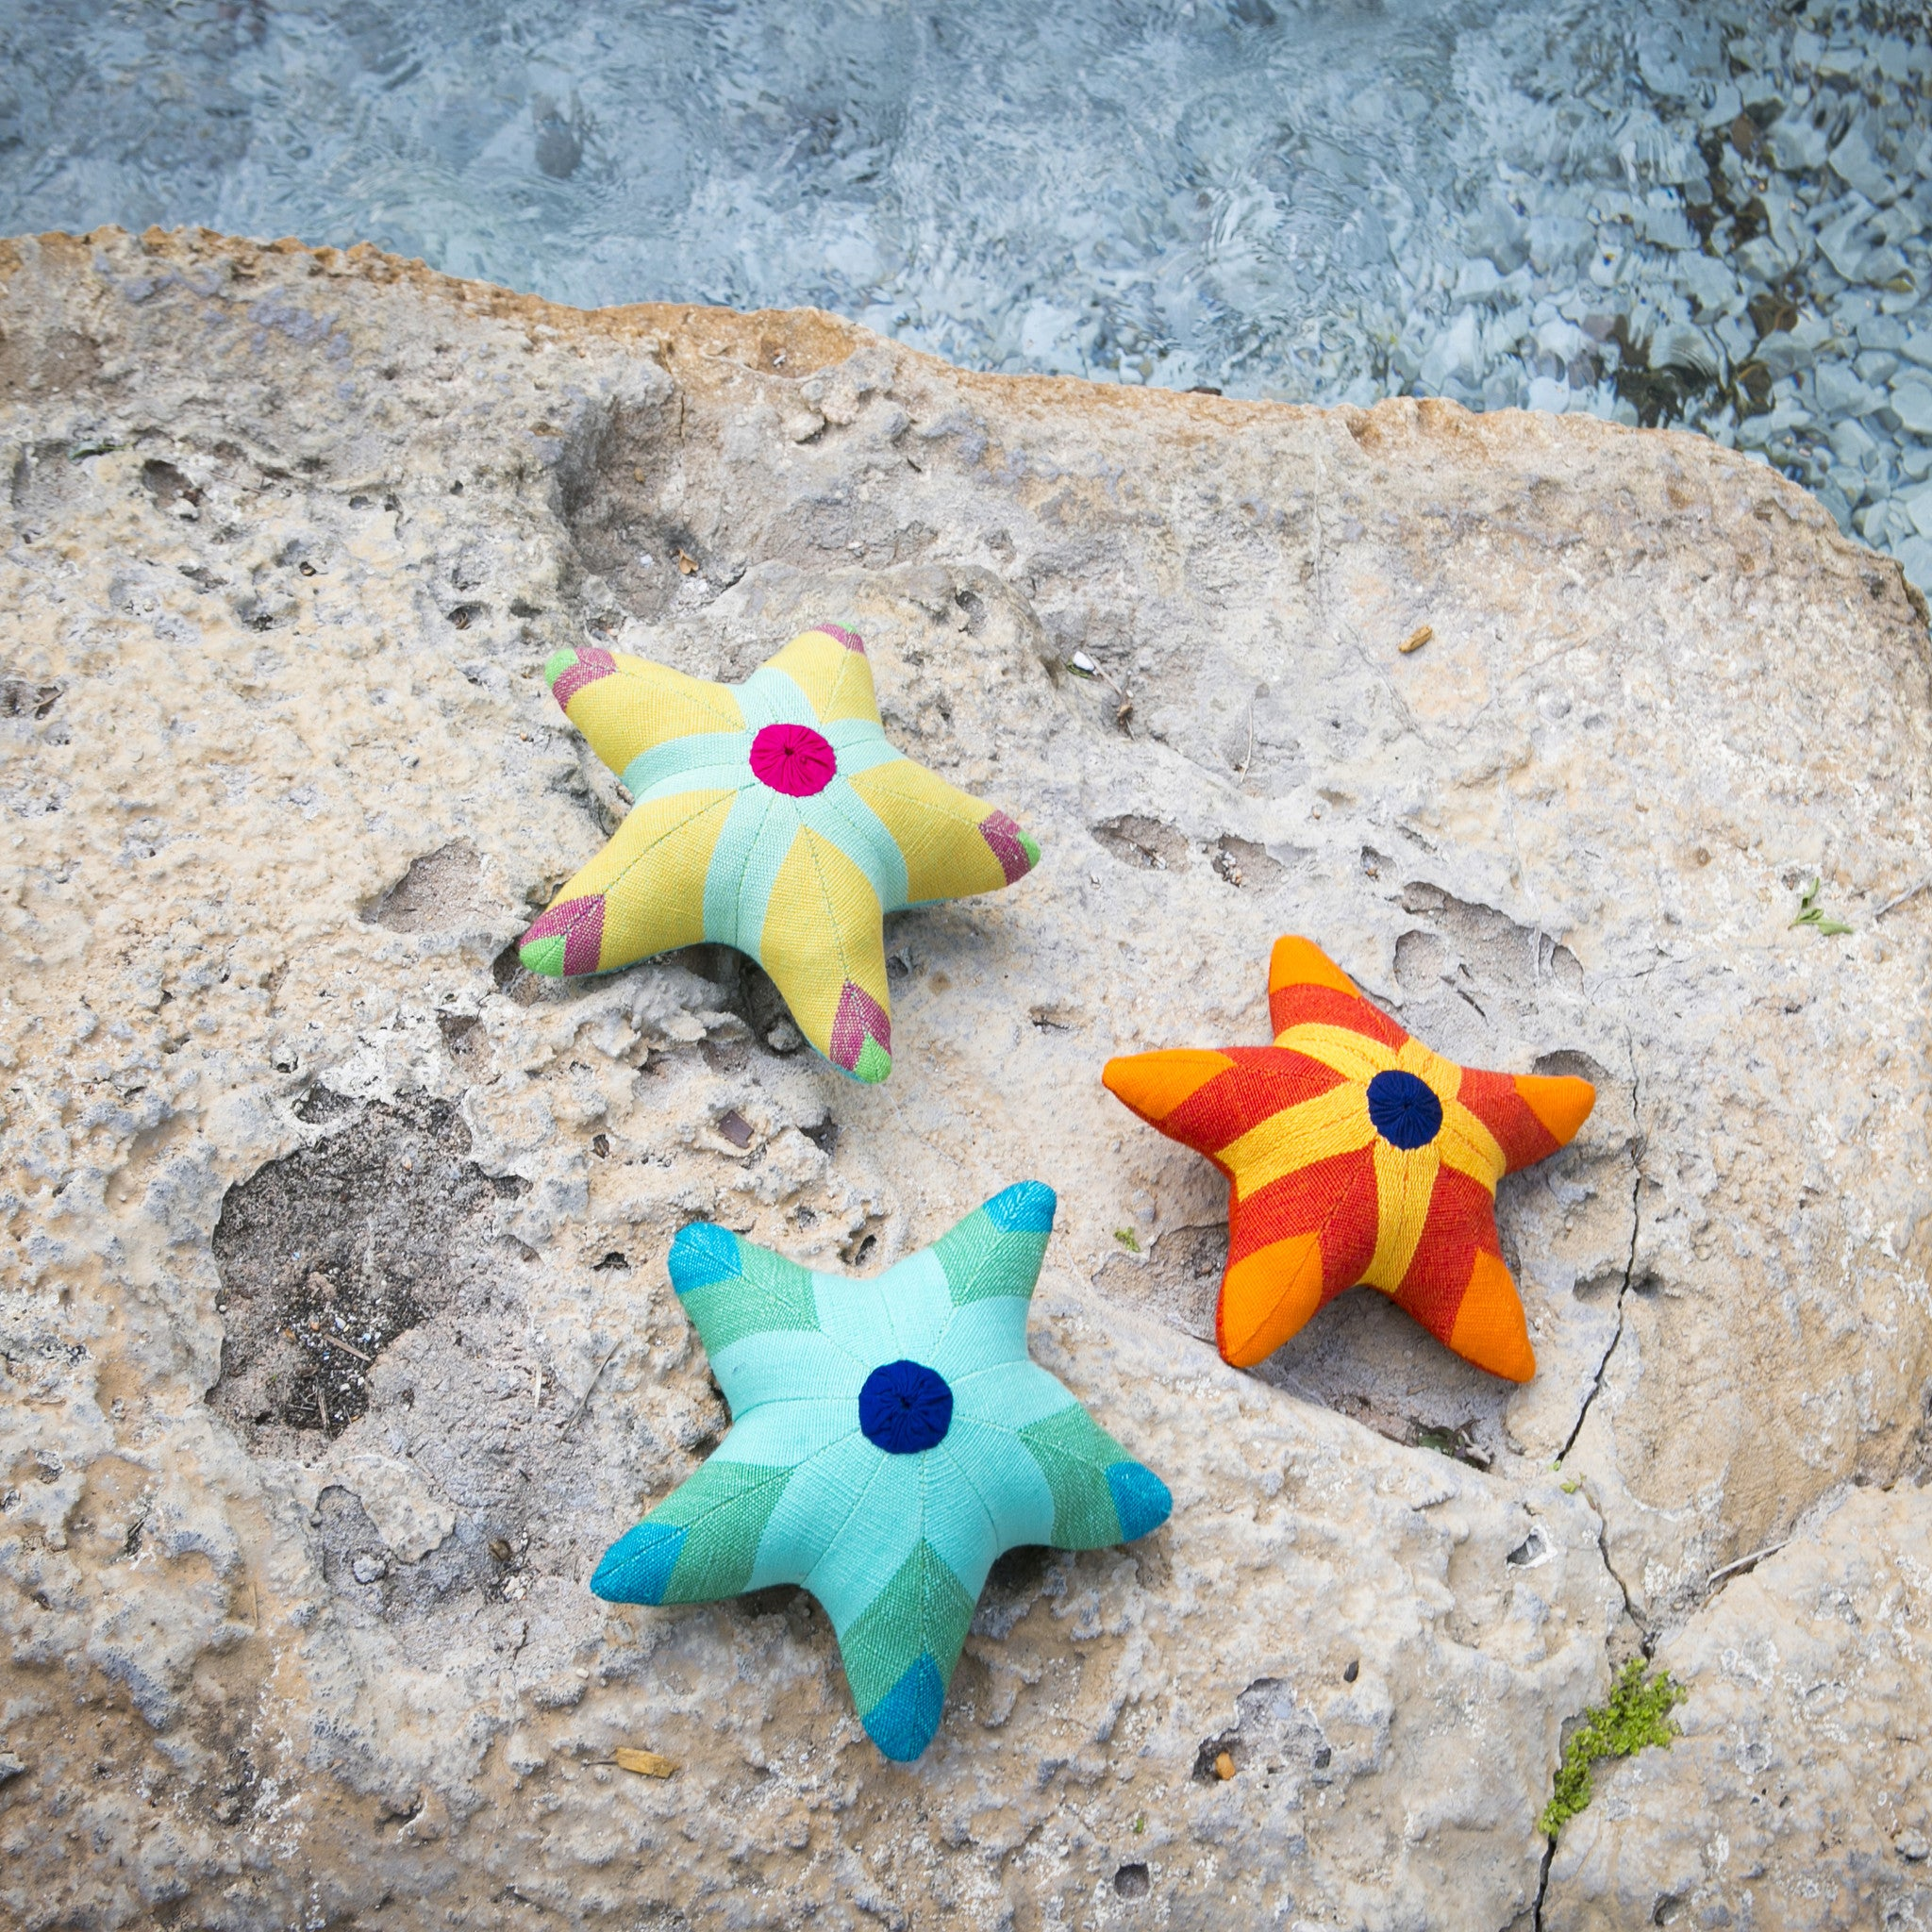 Summer (pastel shades) & Scully, the Starfish – Enjoying a day in the sun!